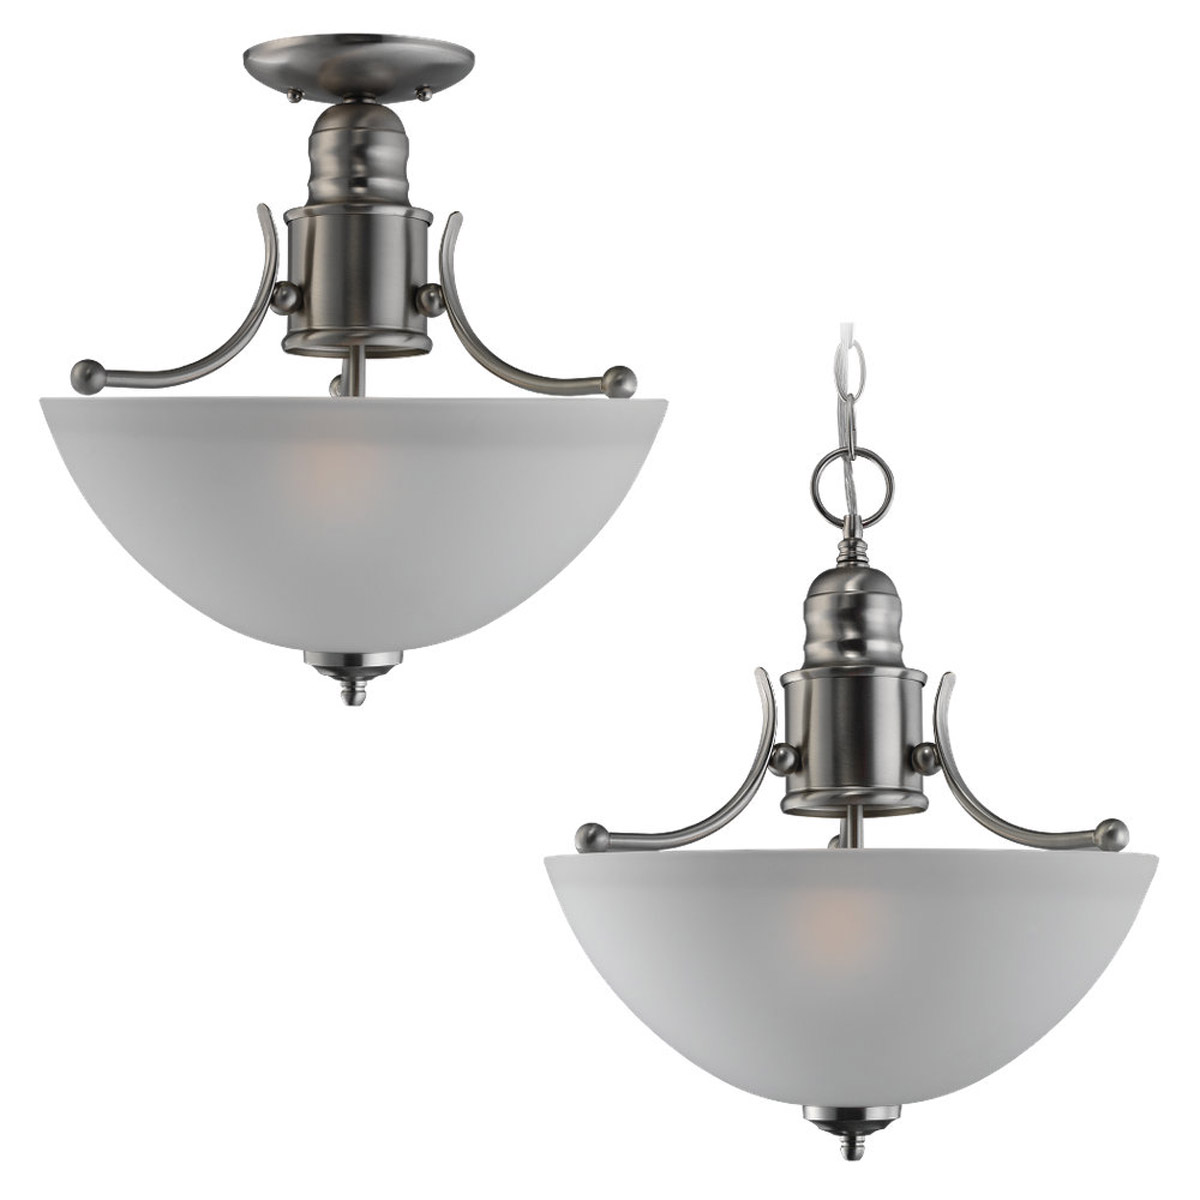 Sea Gull Lighting Linwood 2 Light Flush Mount in Brushed Nickel 77225-962 photo